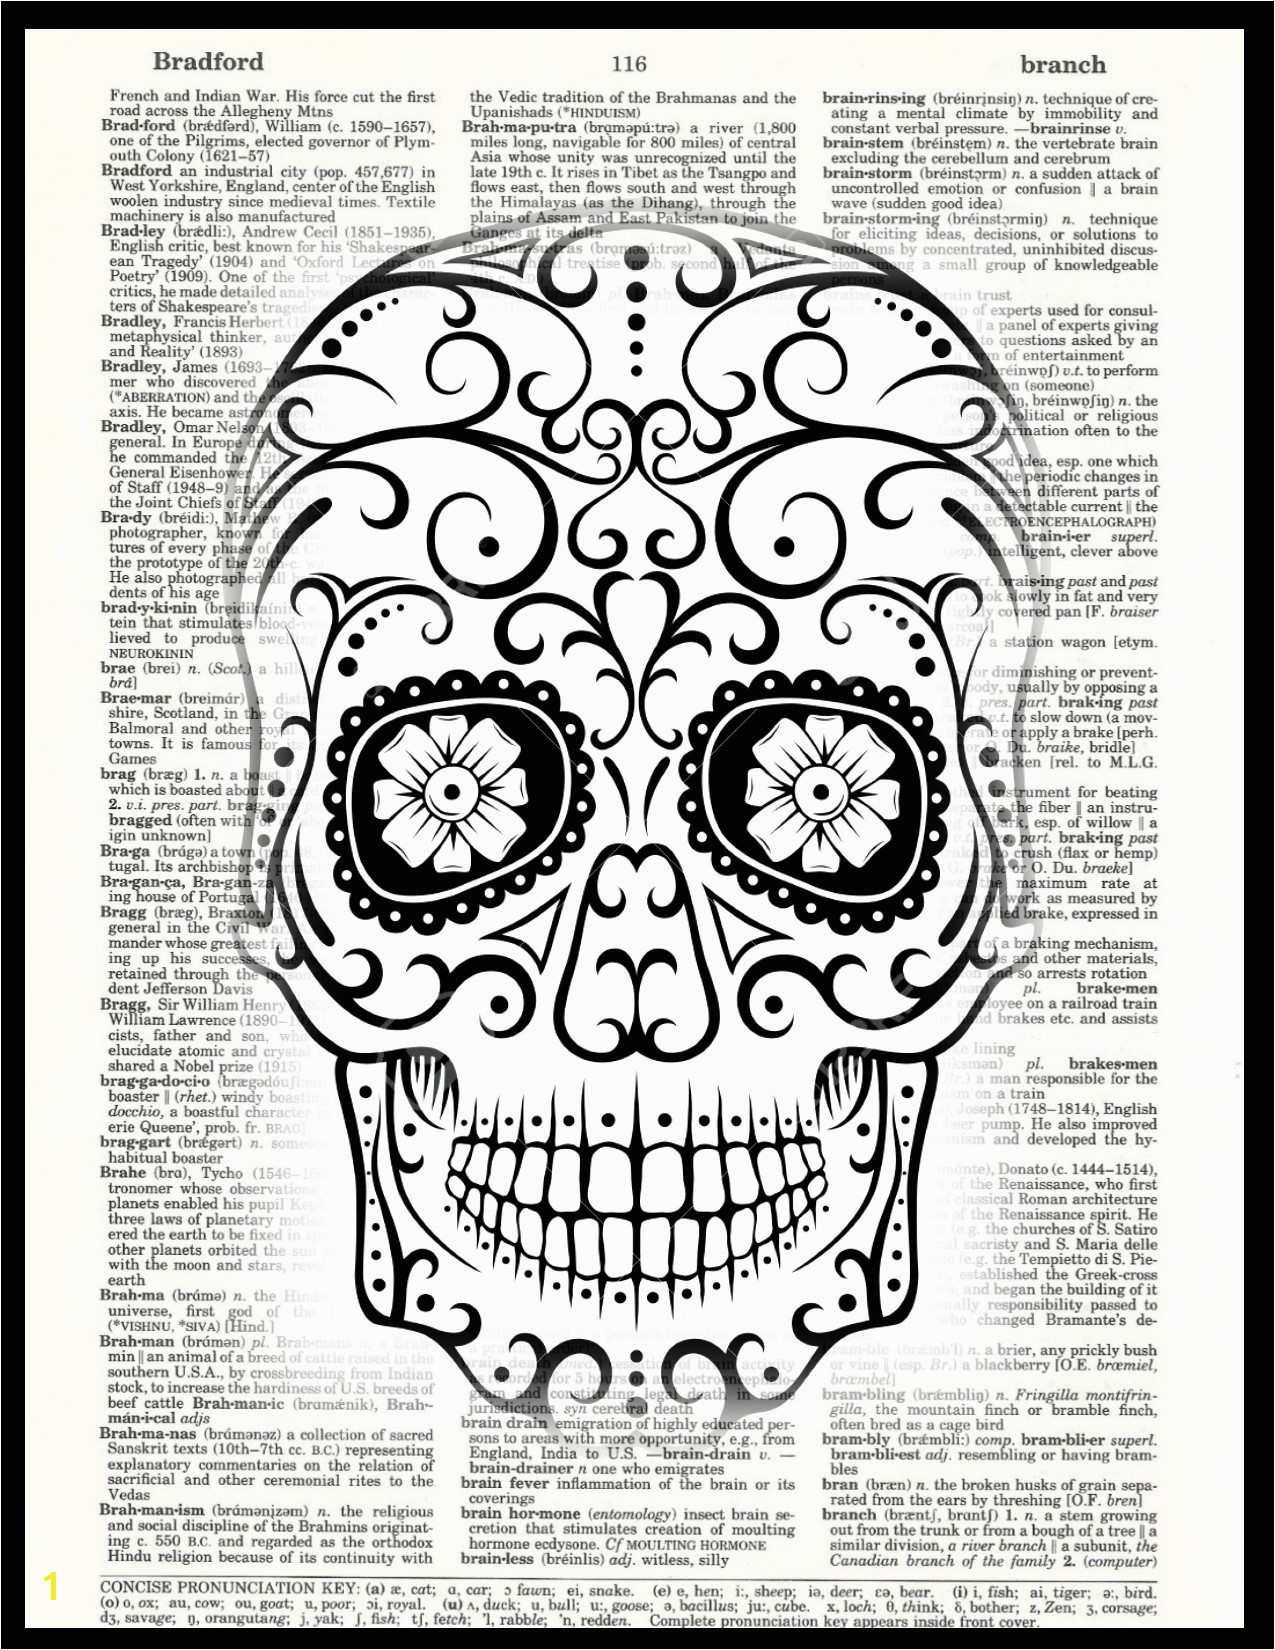 printablegar skull coloring pages for kids female book page buffalo template free design arts rock state park new york to city aquarium central terminal valley ranch